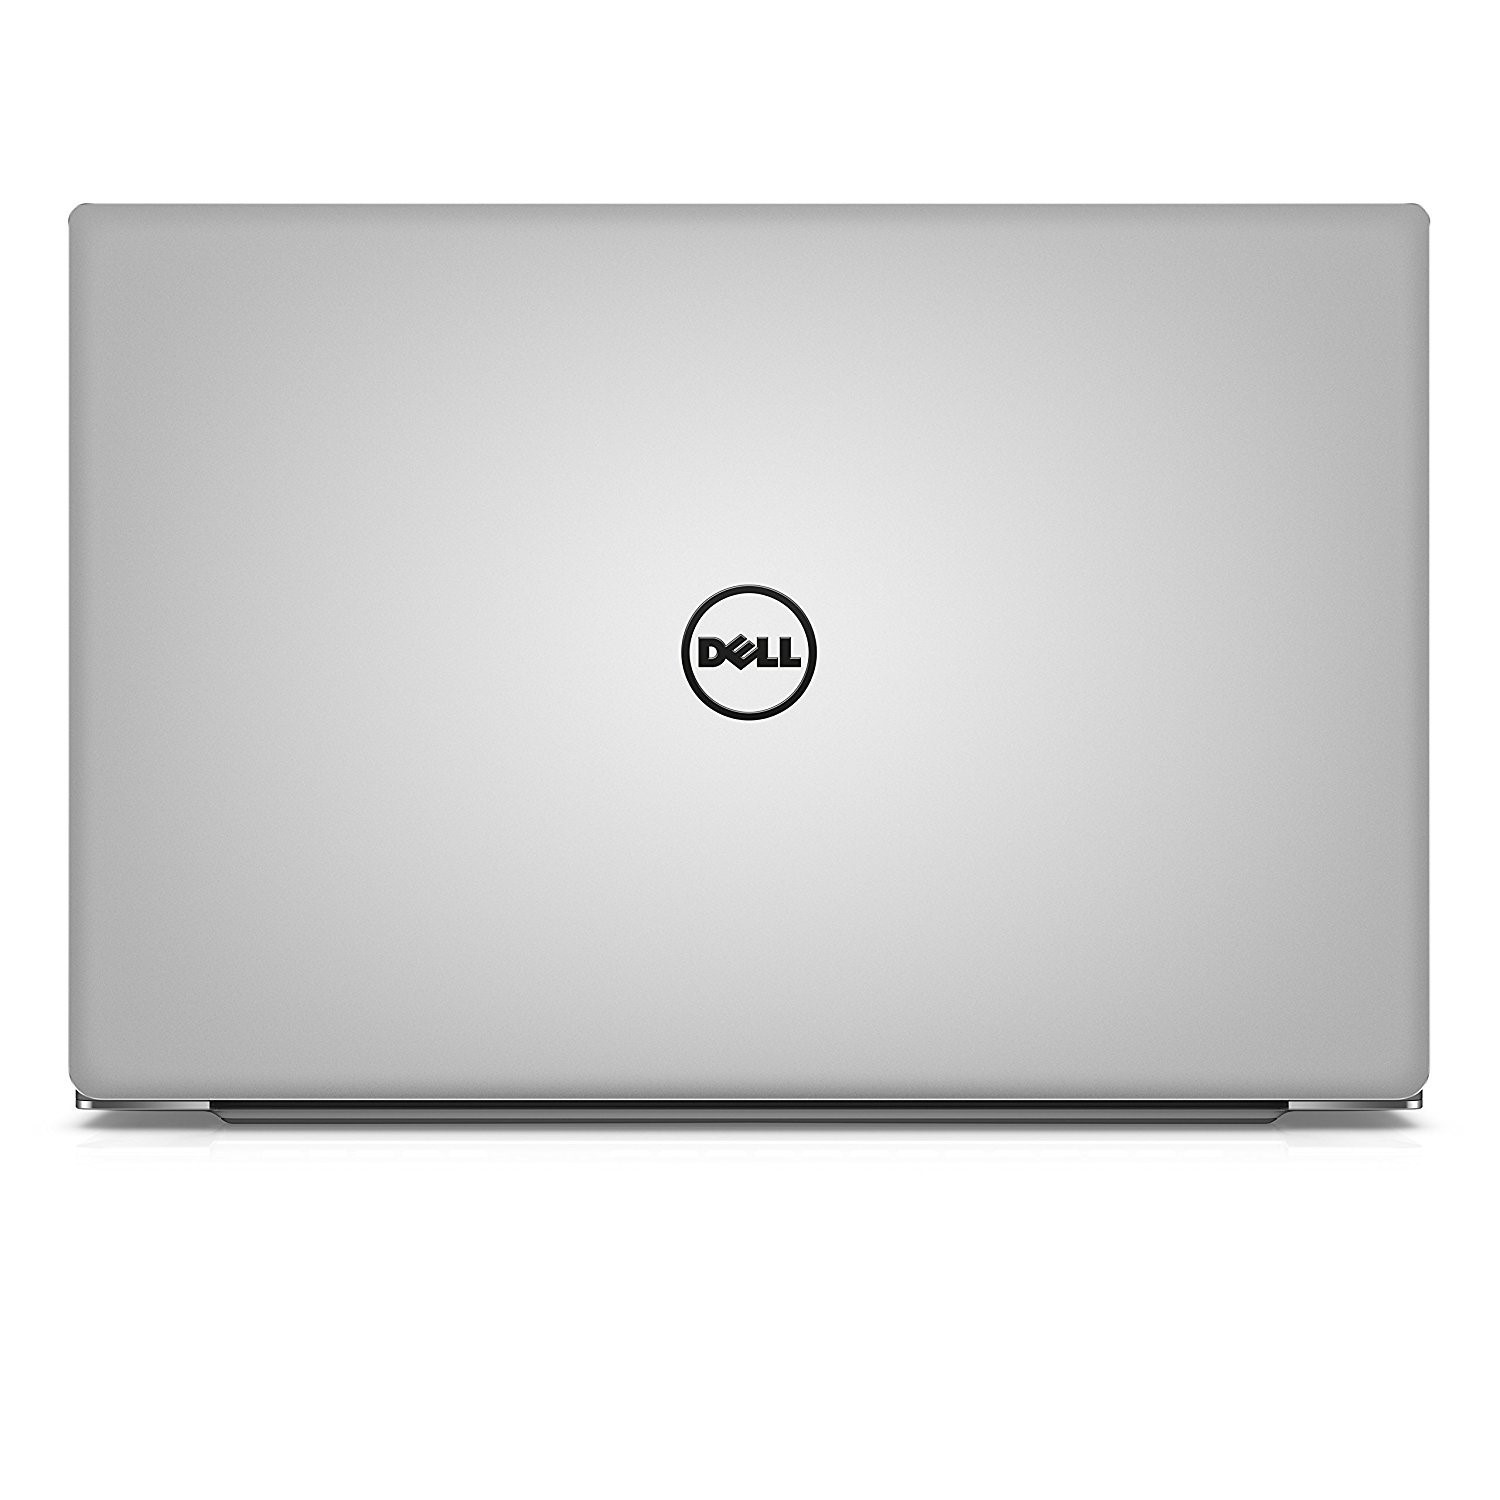 Dell Xps 13 9350 Core I7 6560u 8gb 256gb Ssd Windows 10 Professional